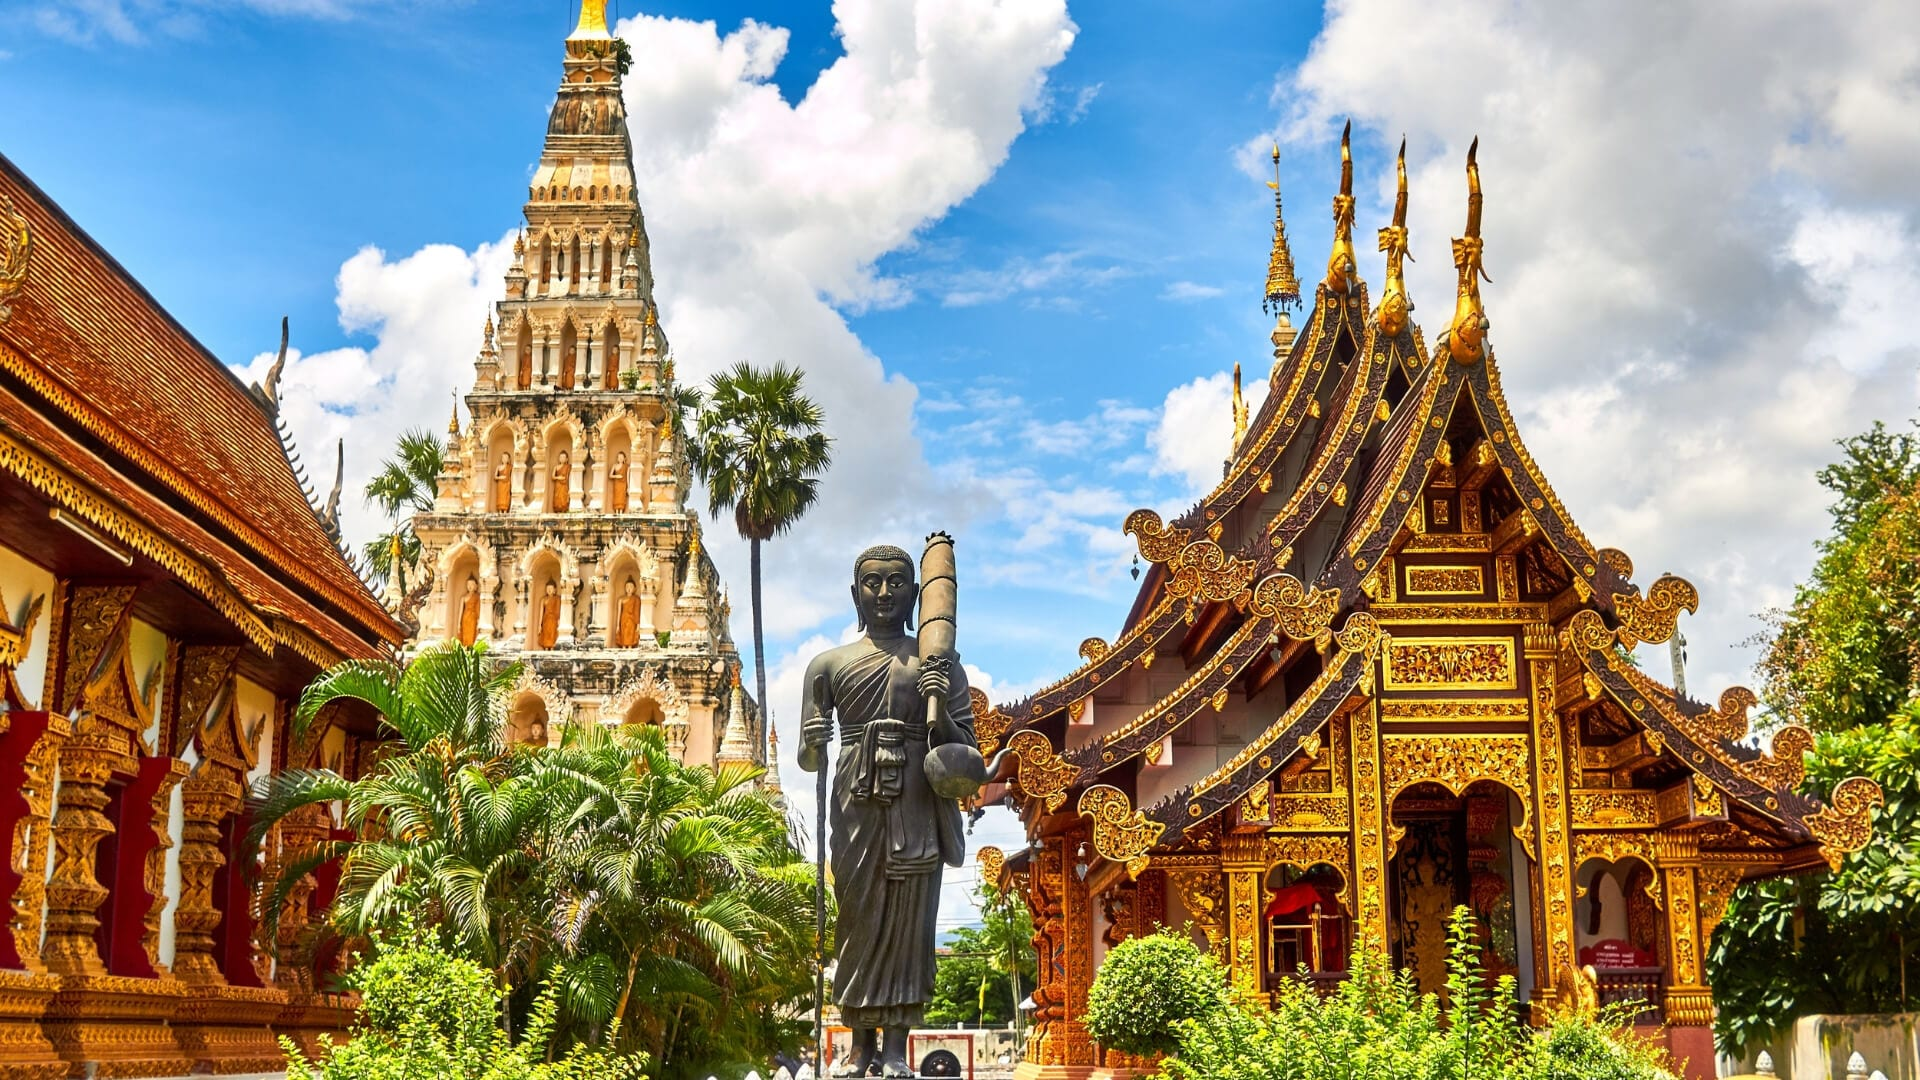 A statue and different temples during a day in Thailand.